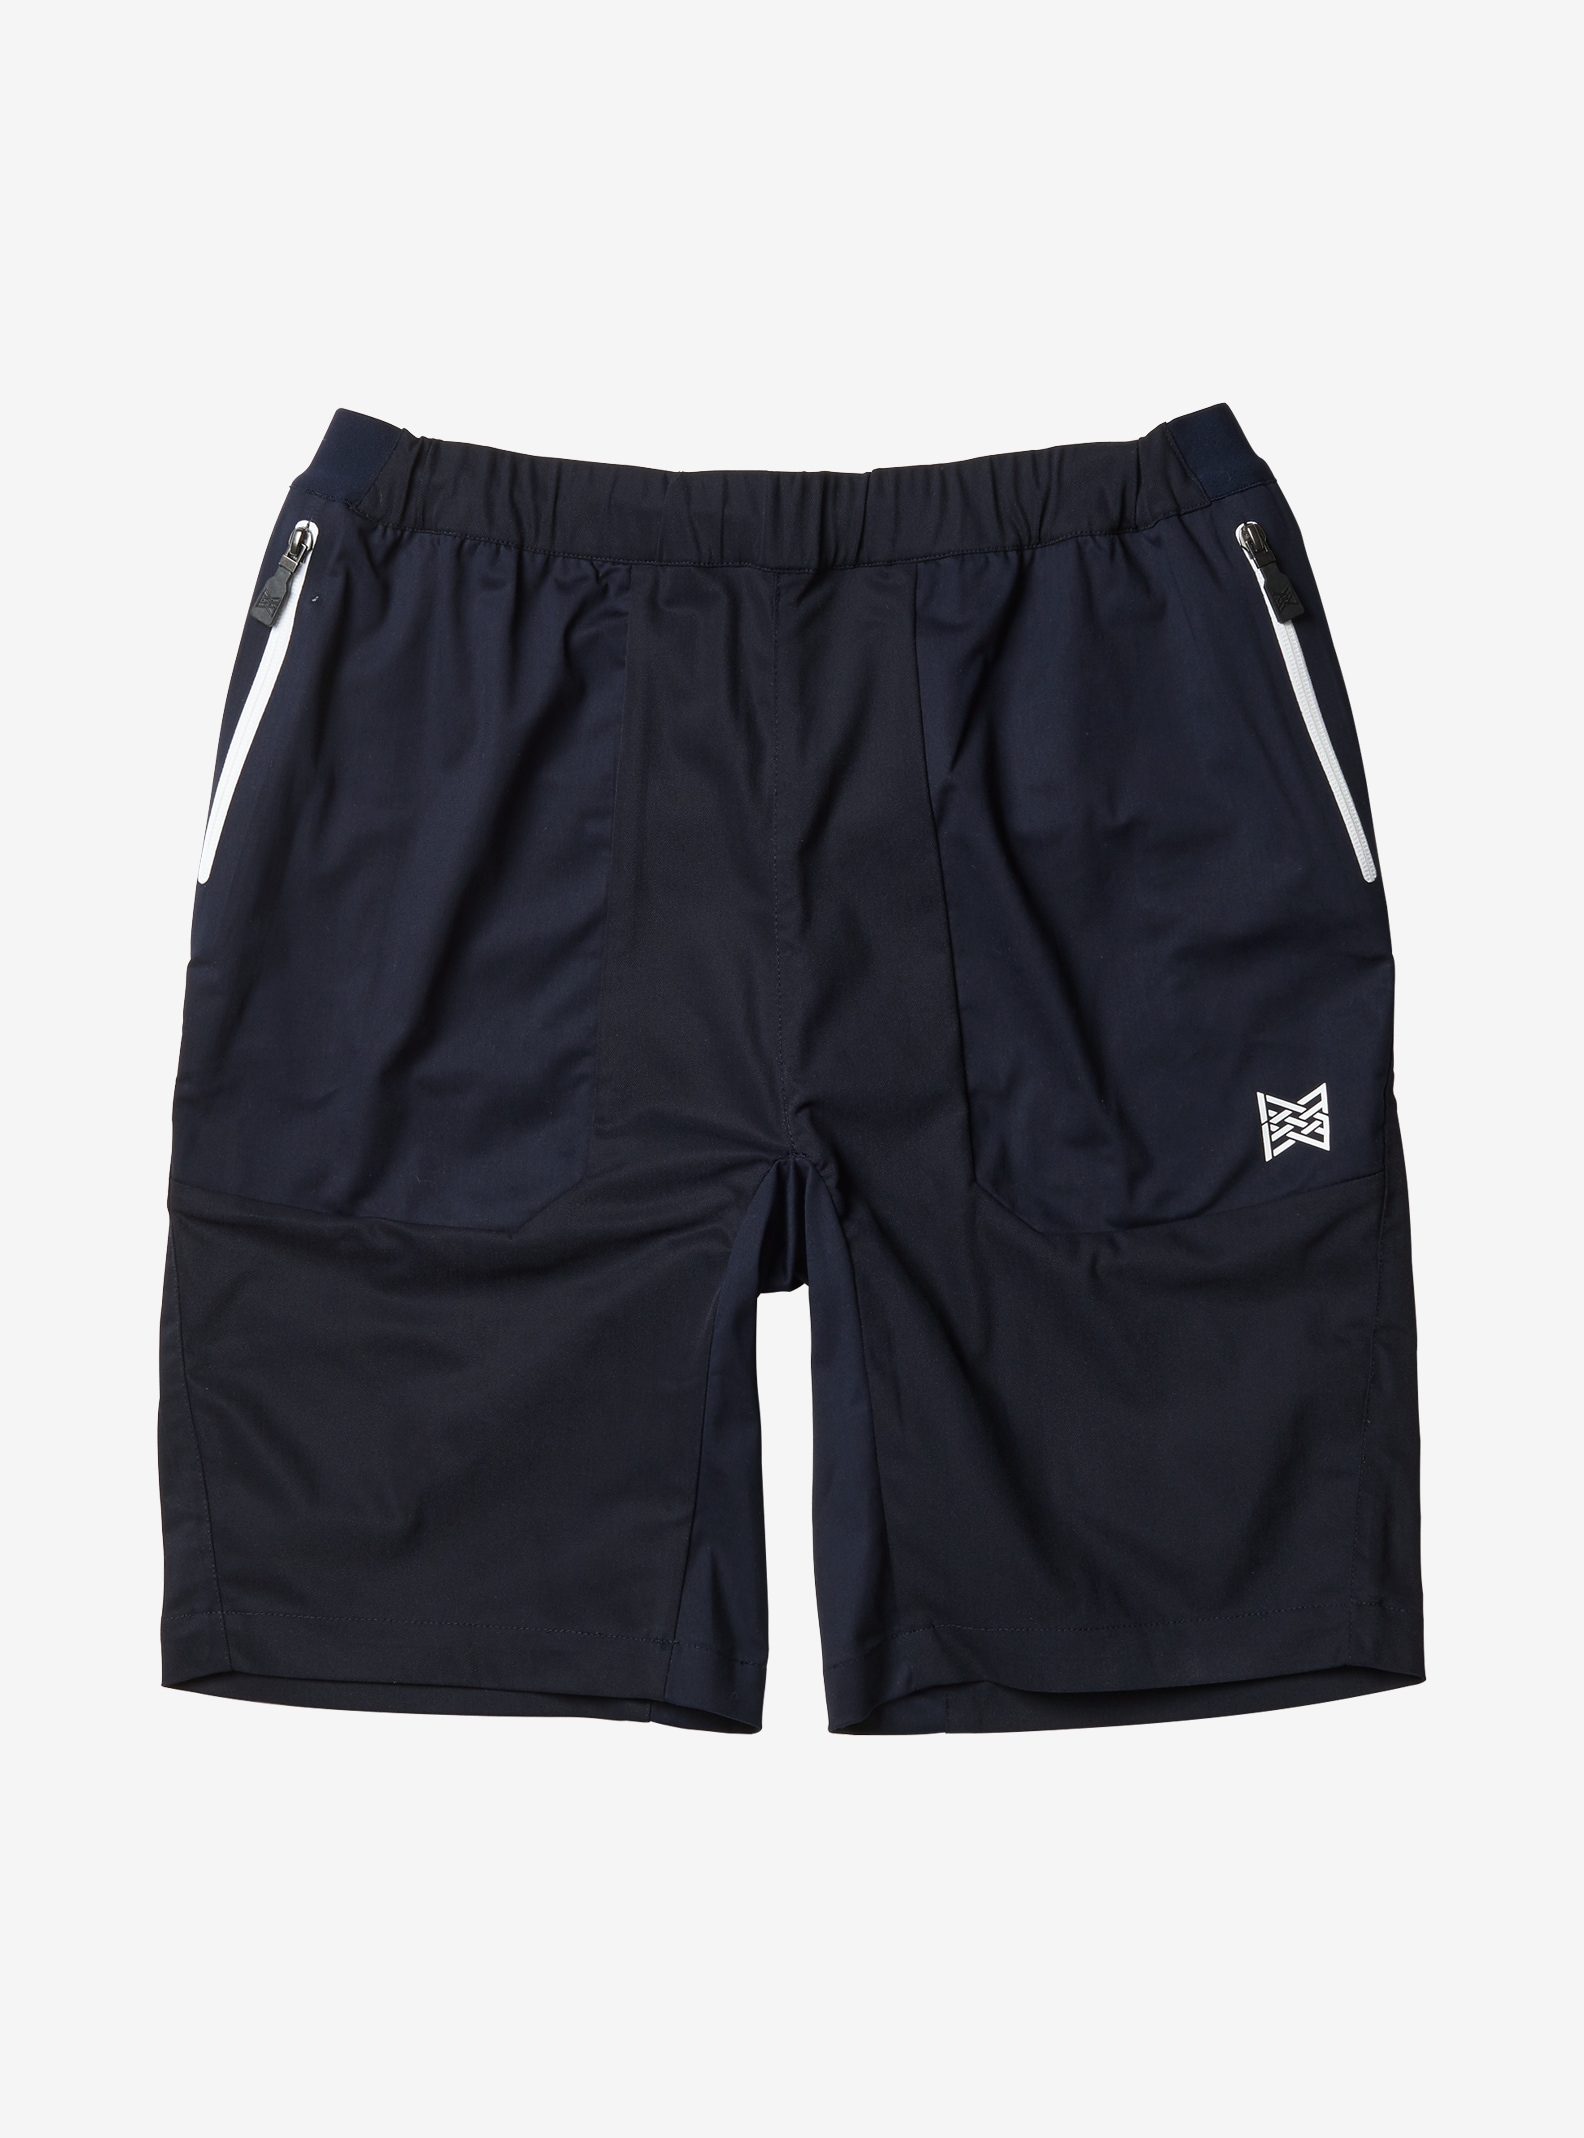 Burton Thirteen Aello shown in Navy